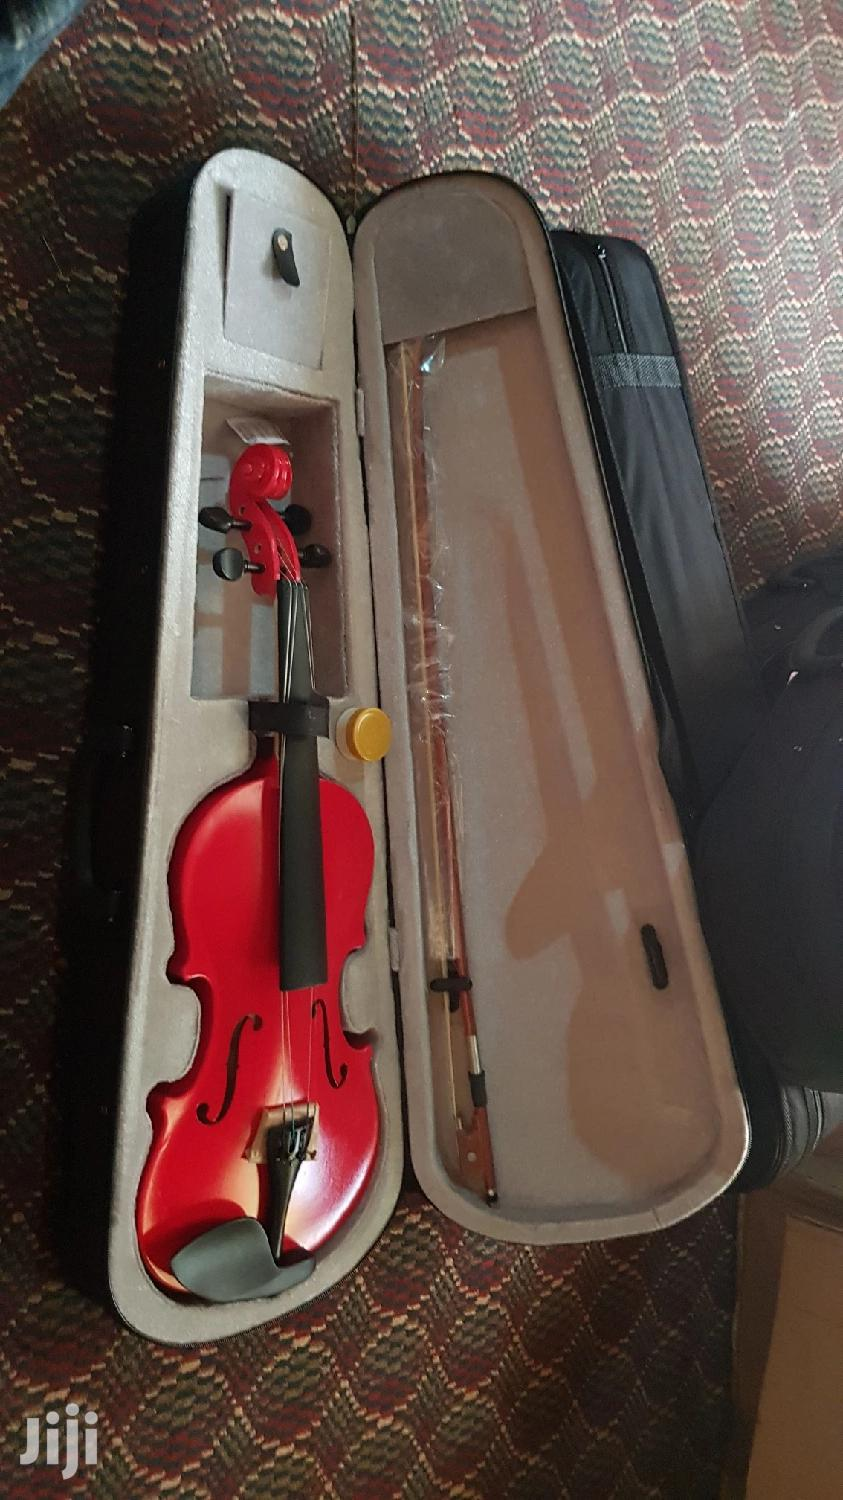 4/4 Violins New From UK   Musical Instruments & Gear for sale in Kampala, Central Region, Uganda